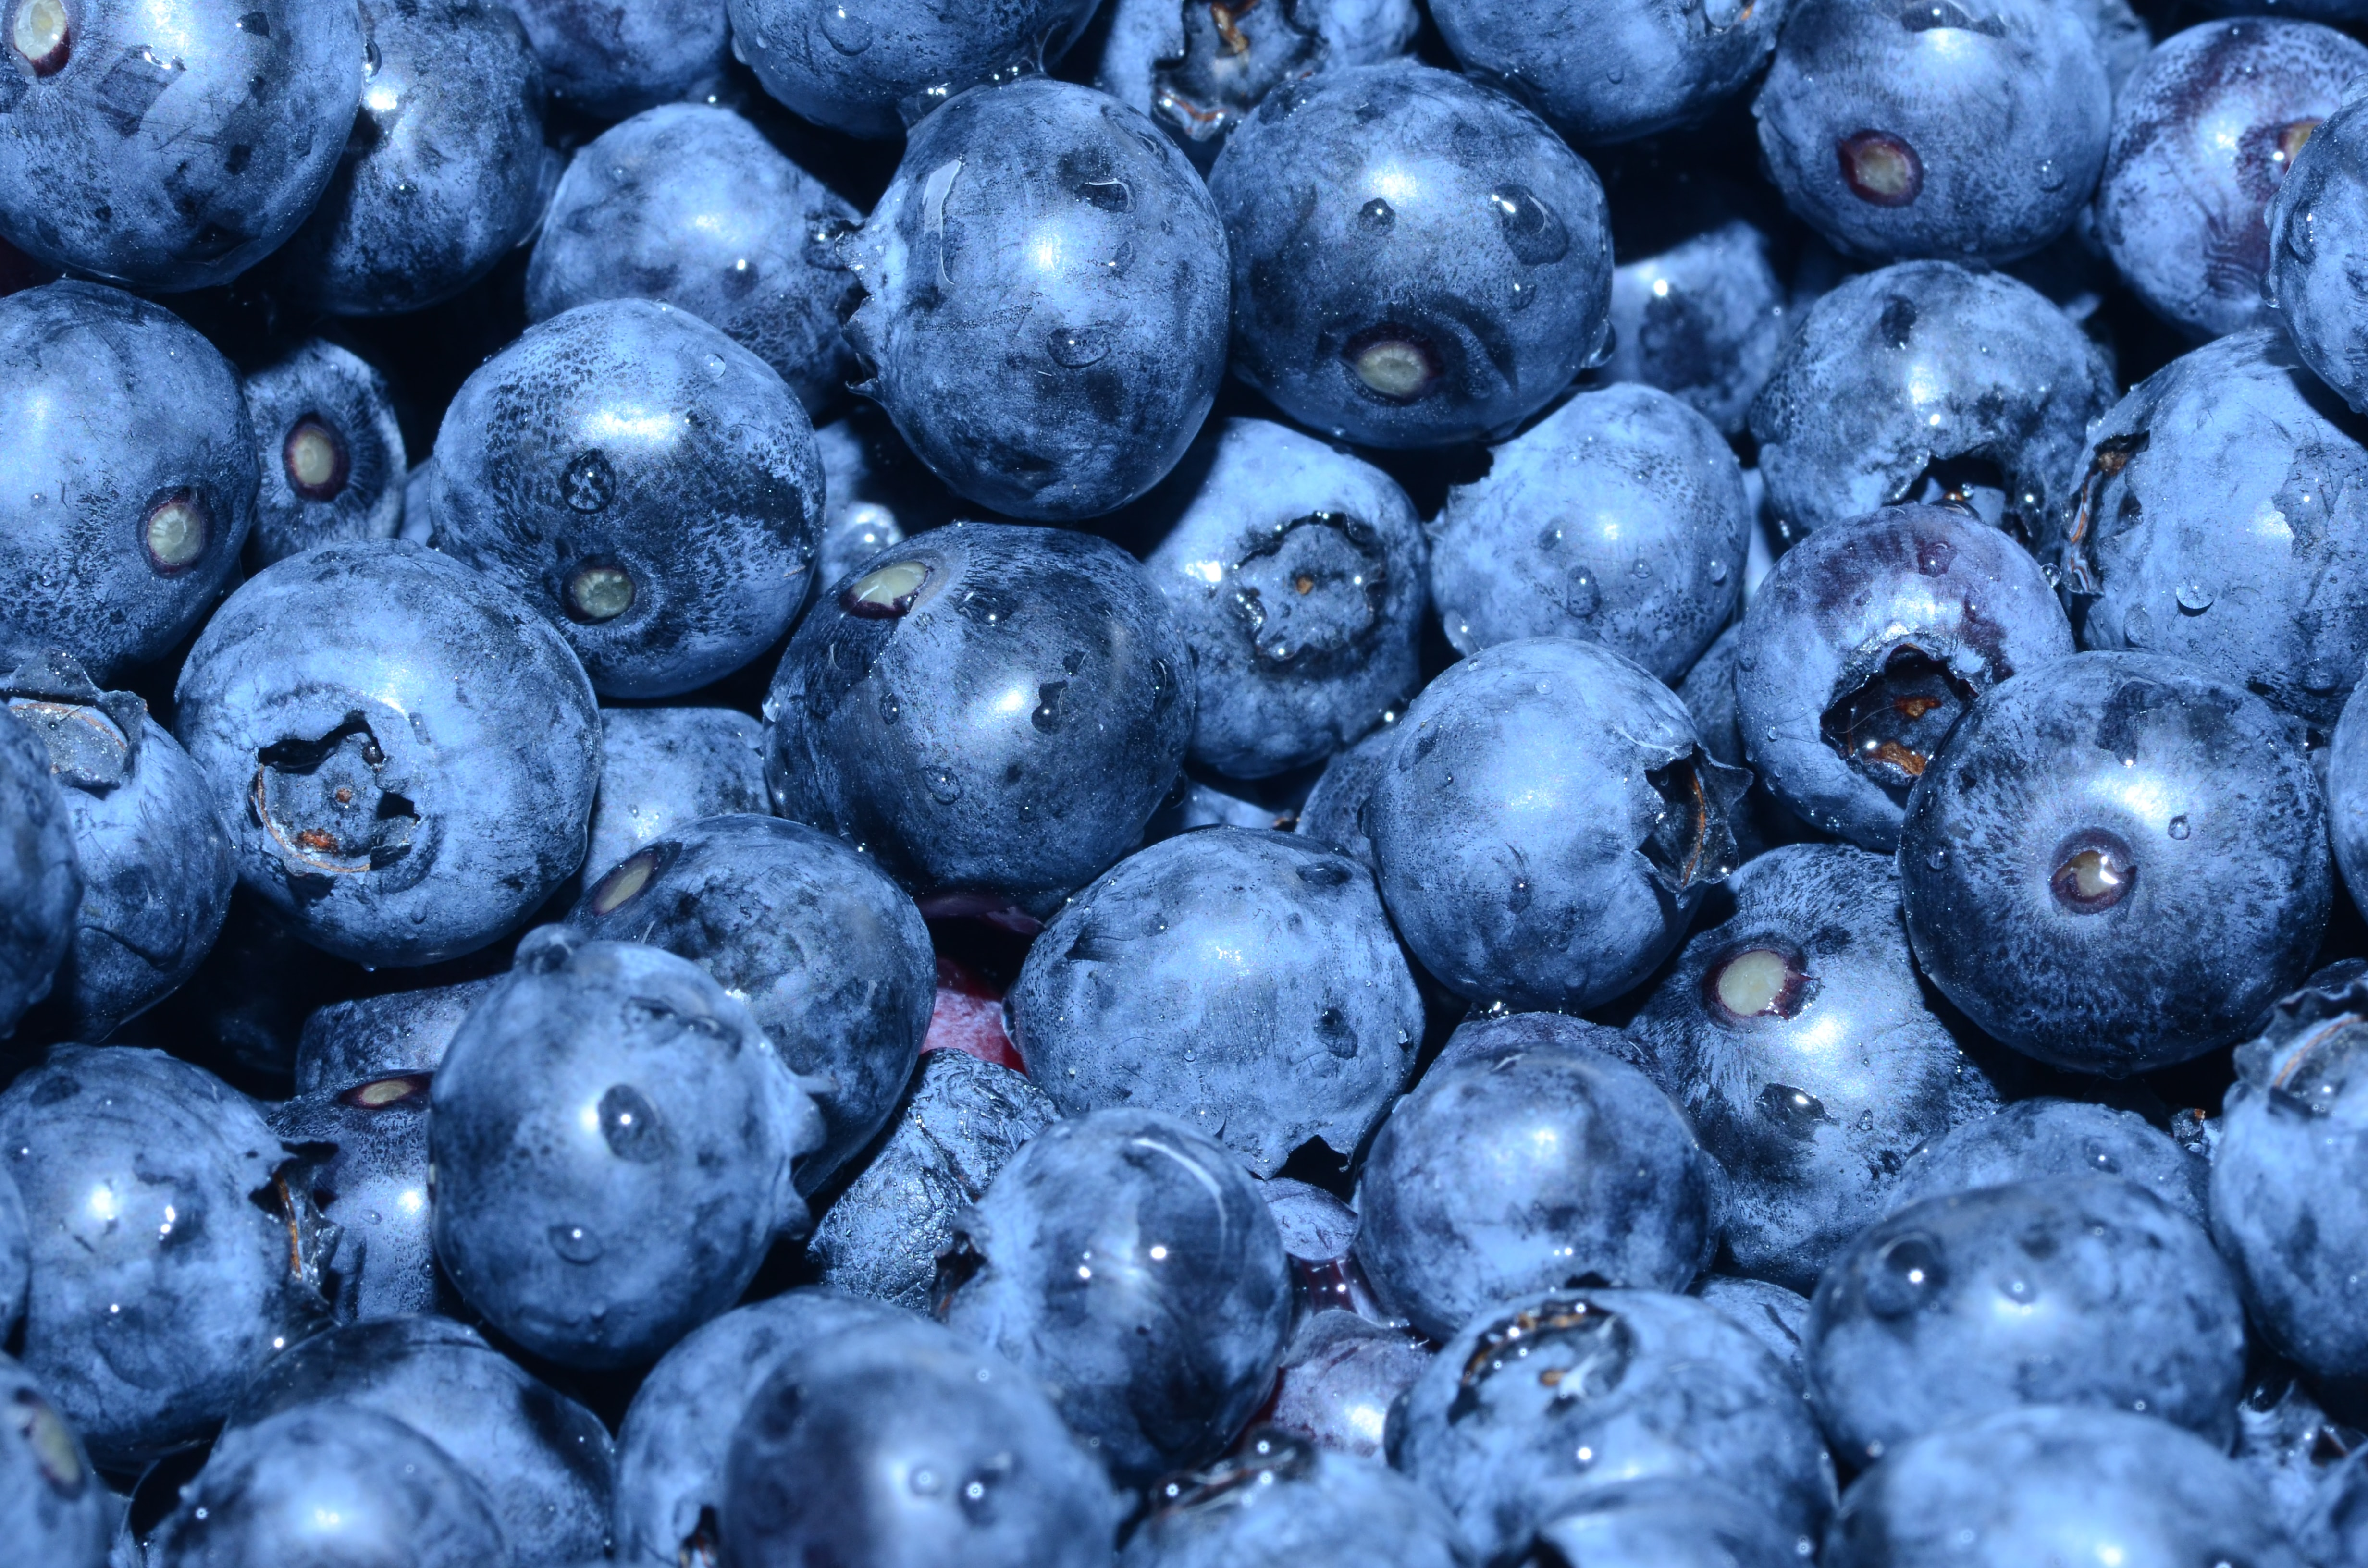 Pile of fresh blueberries gathered for a healthy snack